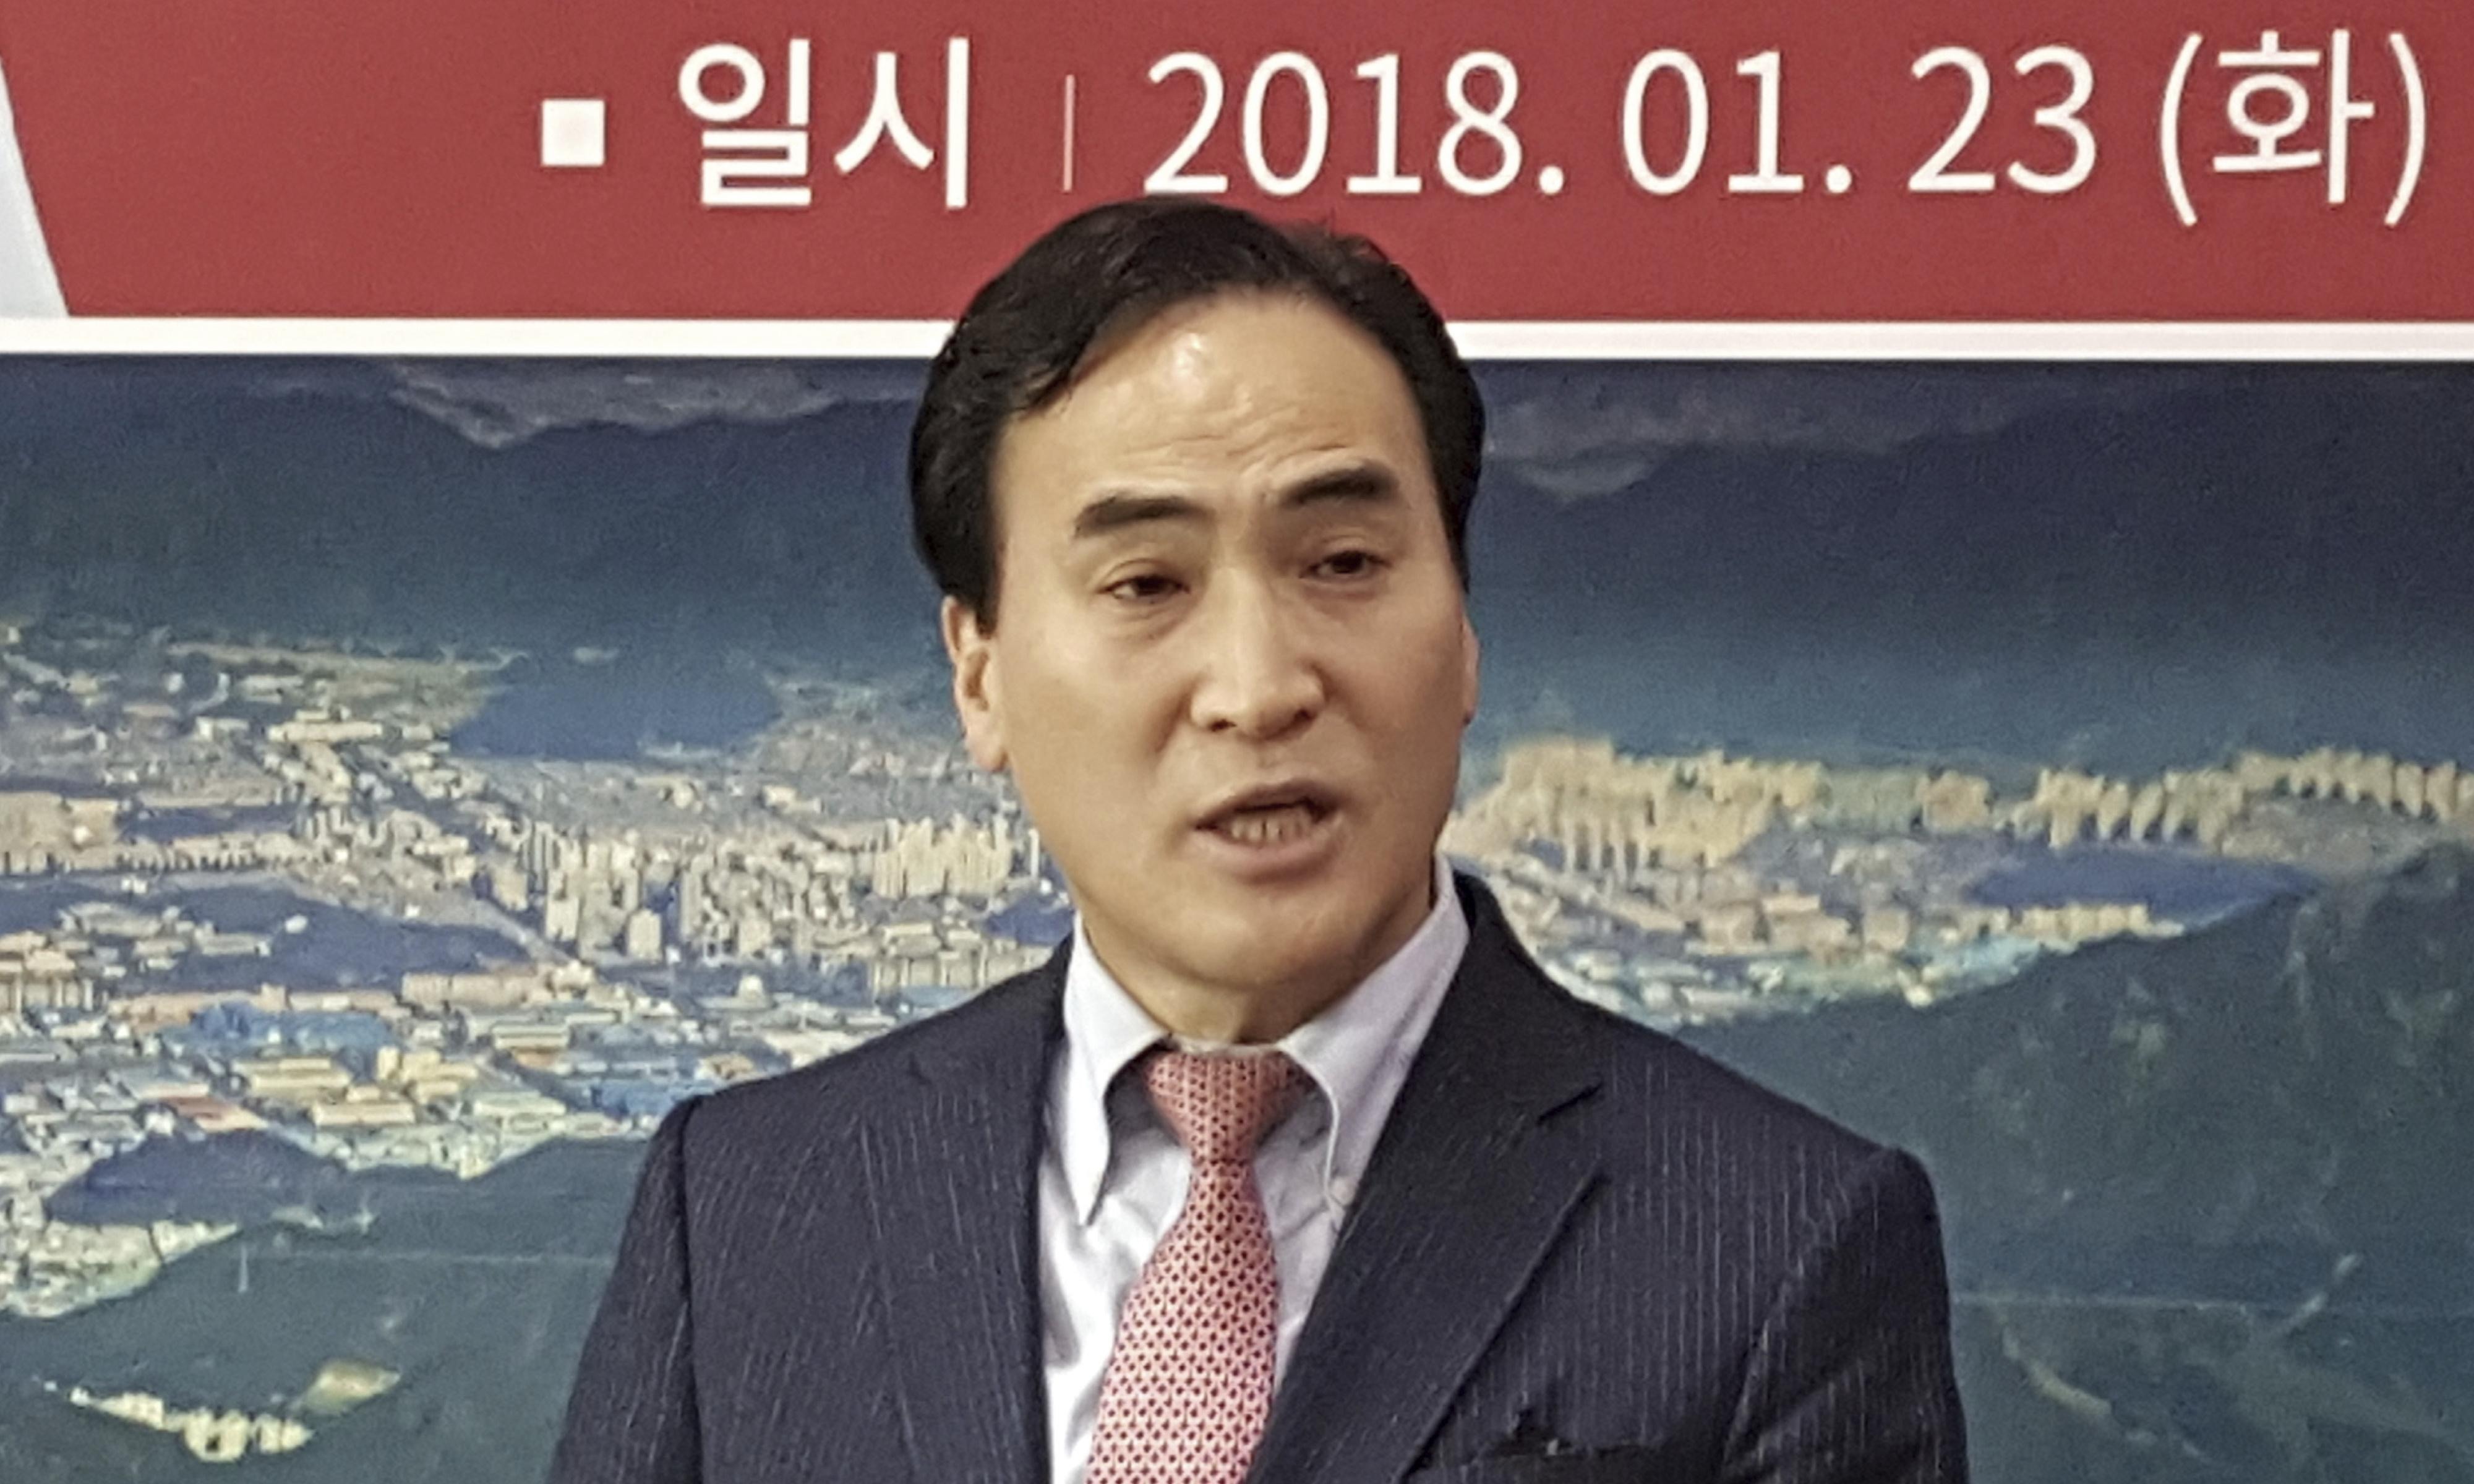 Interpol elects South Korean as its president, in blow to Russia